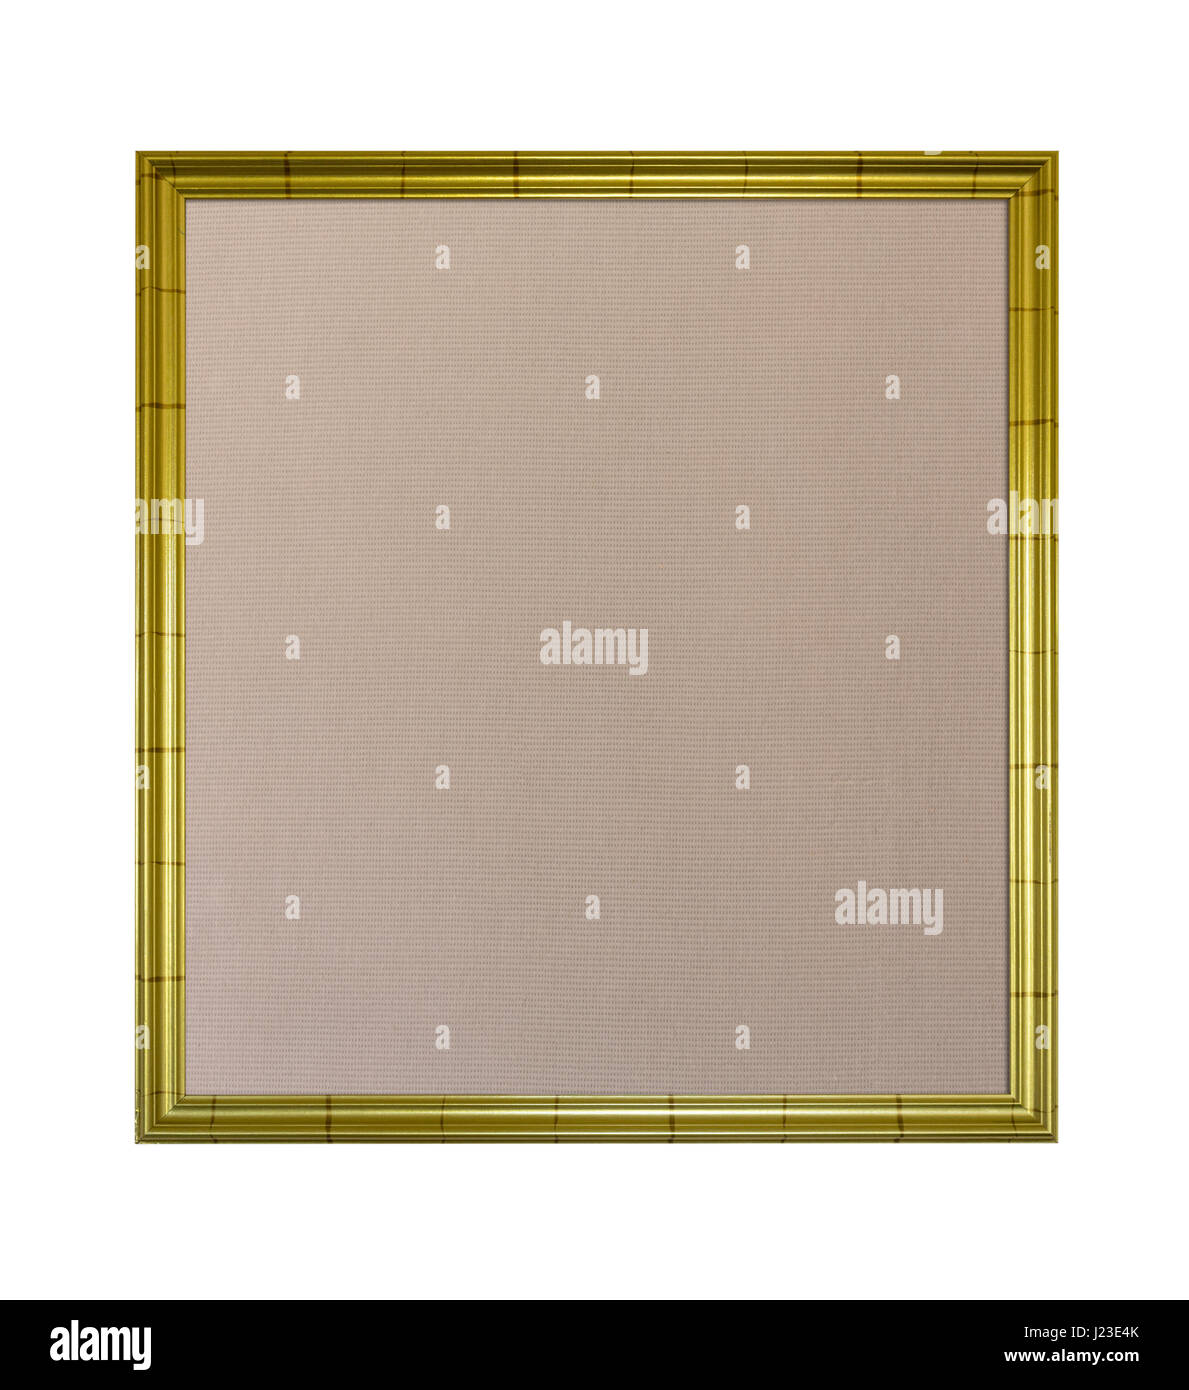 Picture frame in gold with pinboard noticeboard interior - Stock Image